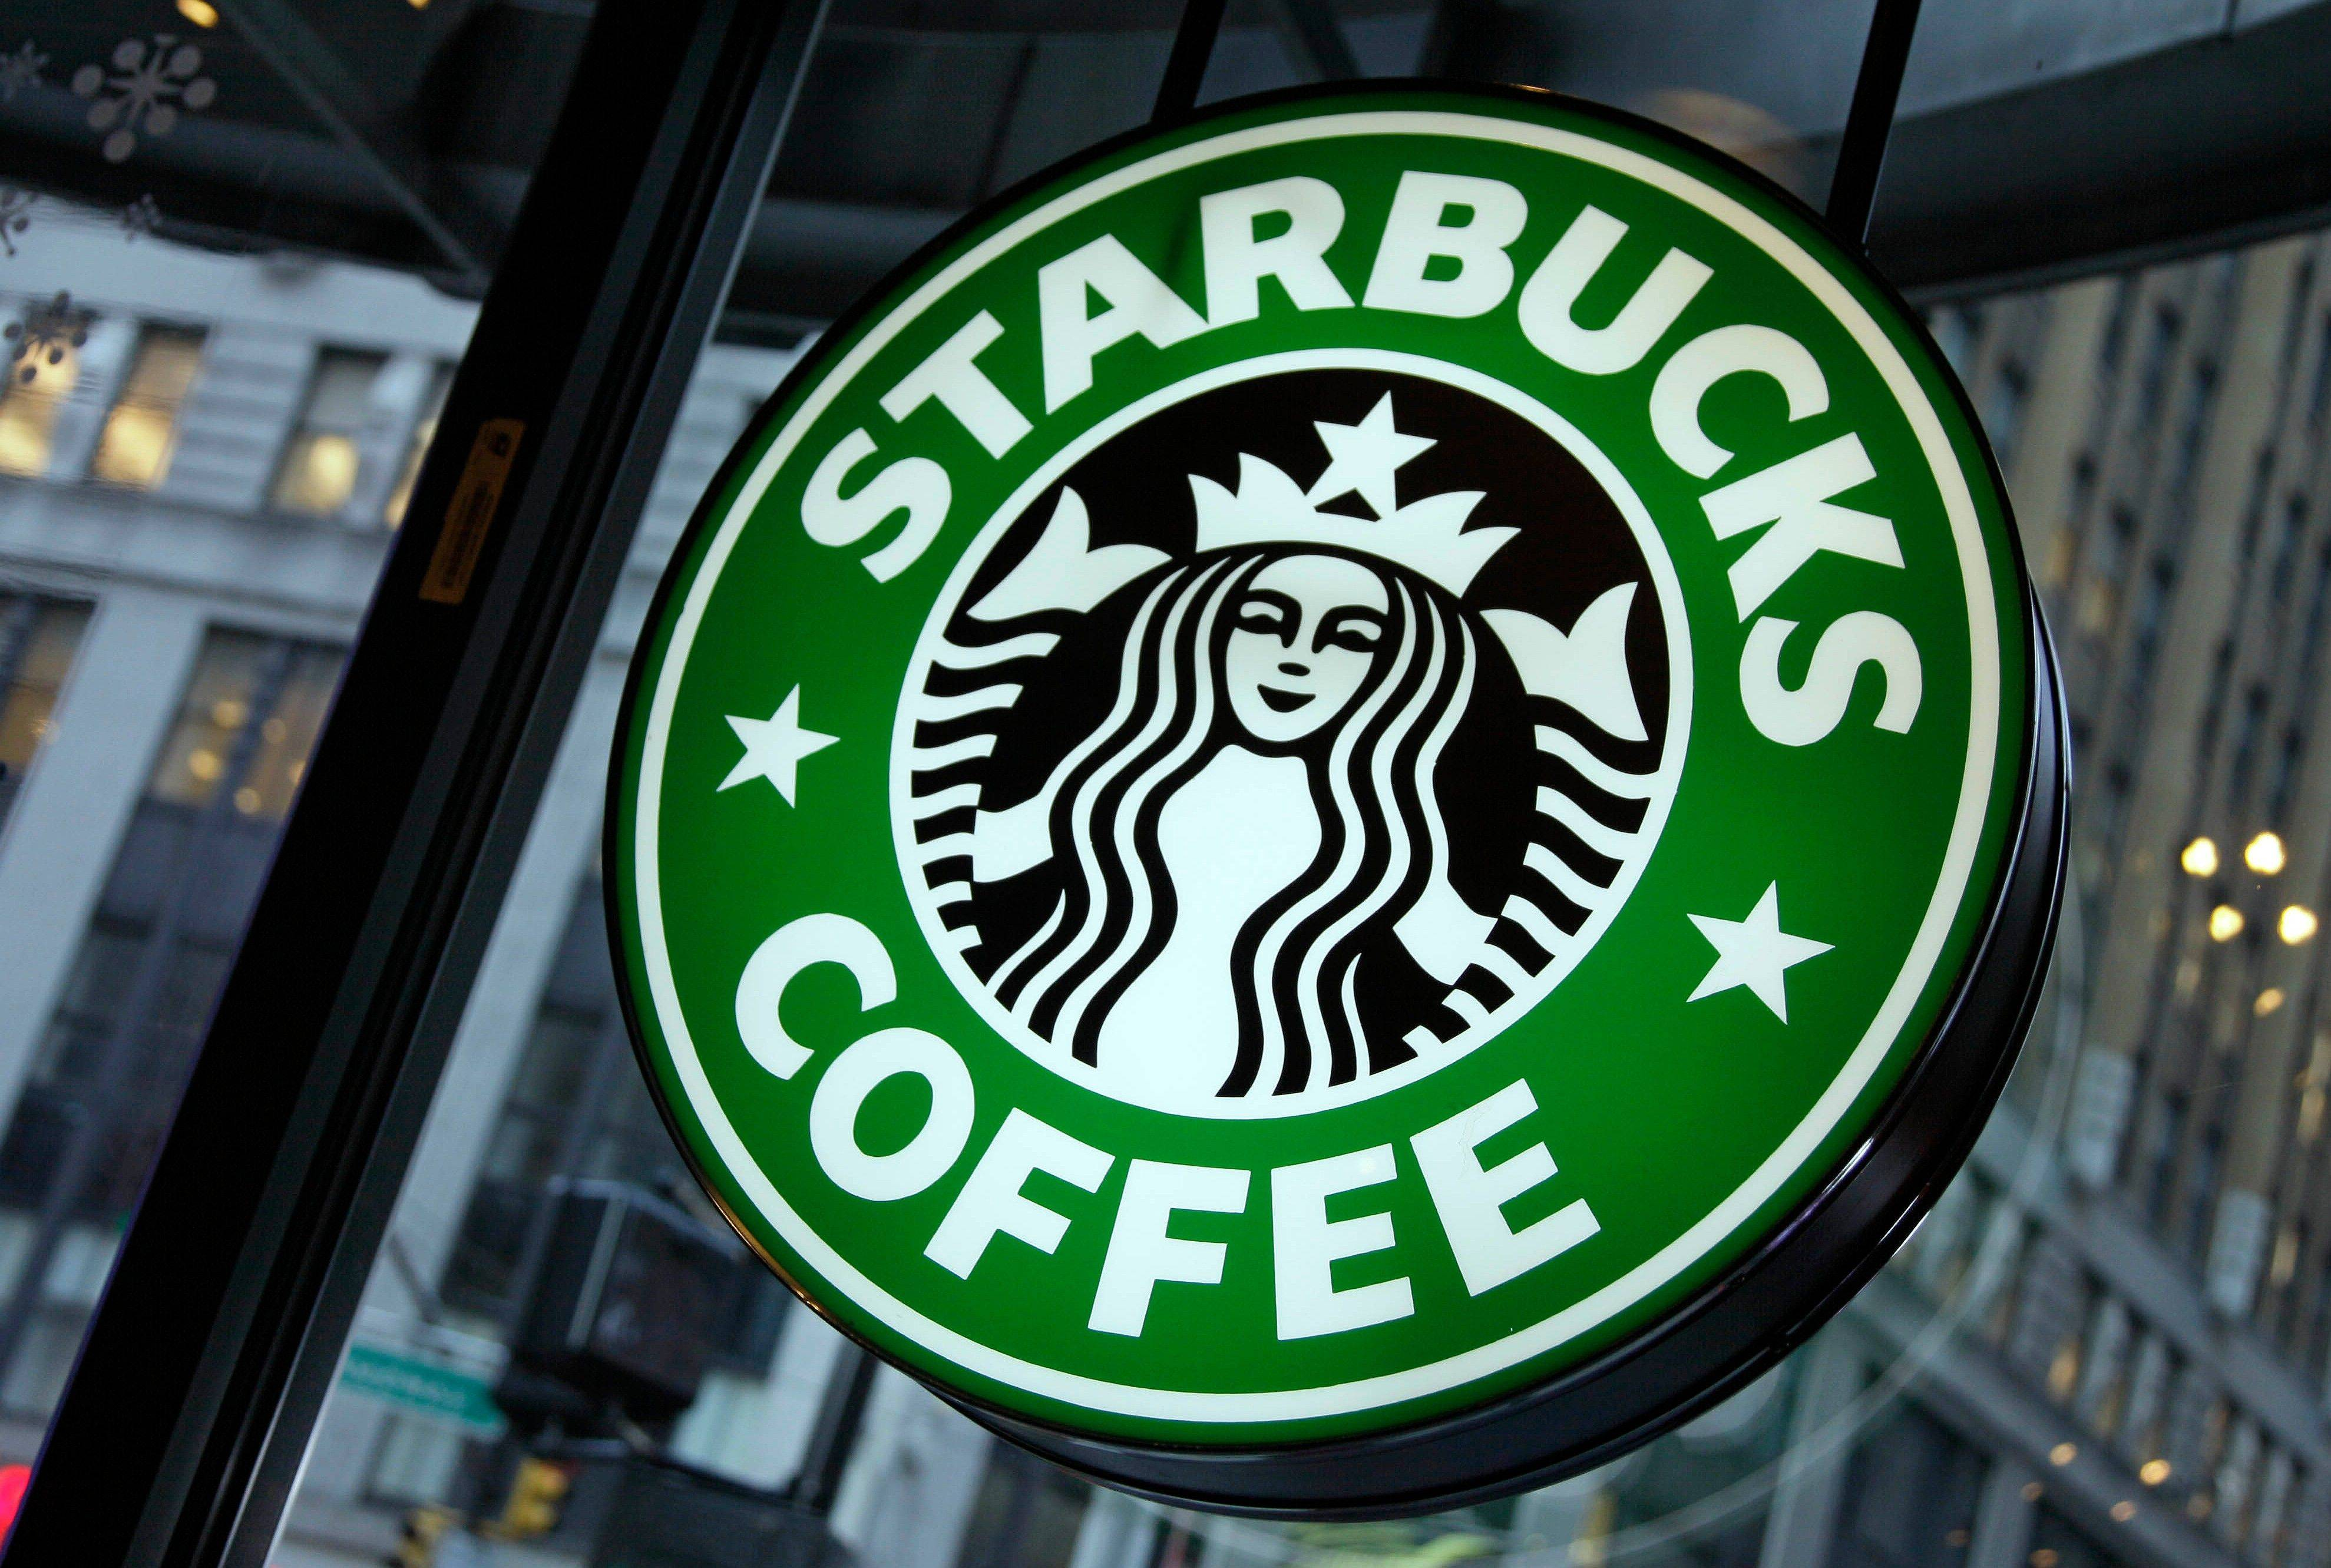 Associated Press Starbucks Corp. said Tuesday it will have packages of its Keurig coffee pods available at U.S. grocery stores and specialty retailers beginning in November.